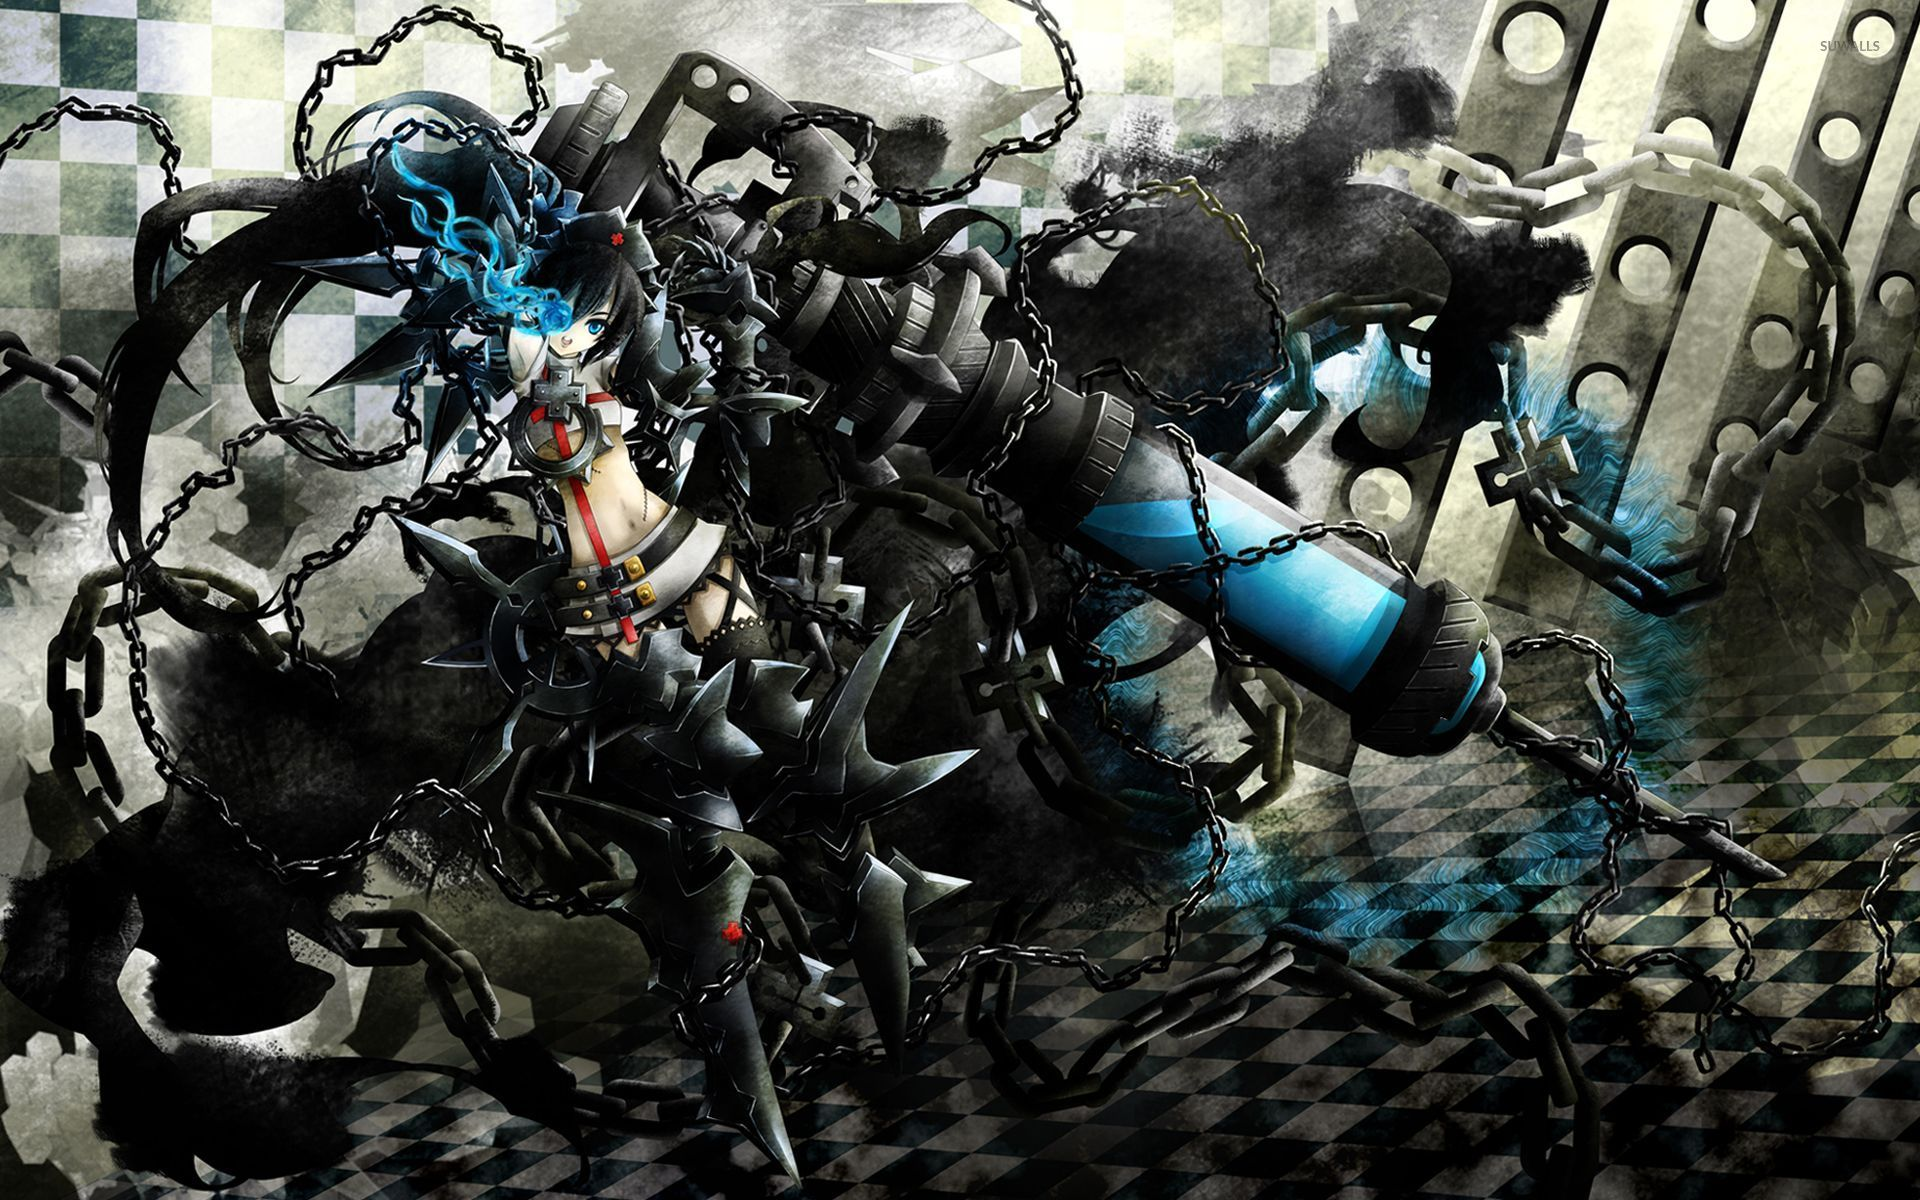 stella in chains - black rock shooter wallpaper - anime wallpapers